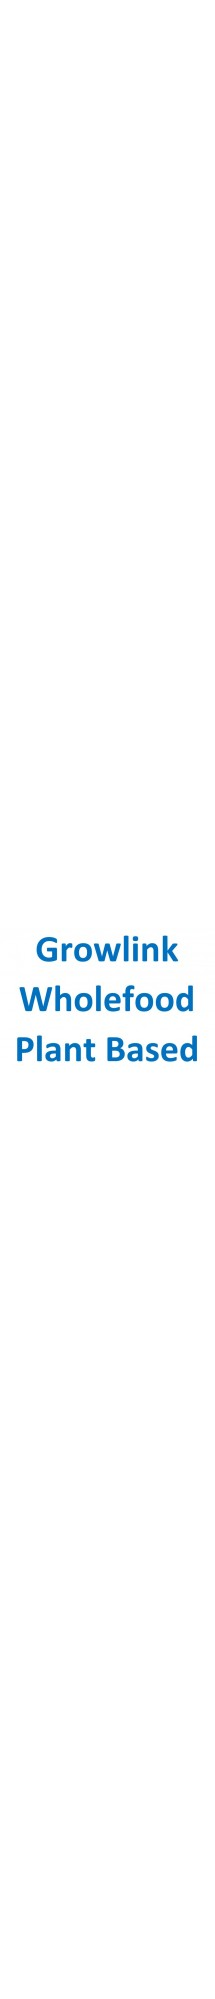 Growlink Wholefood Plant Based